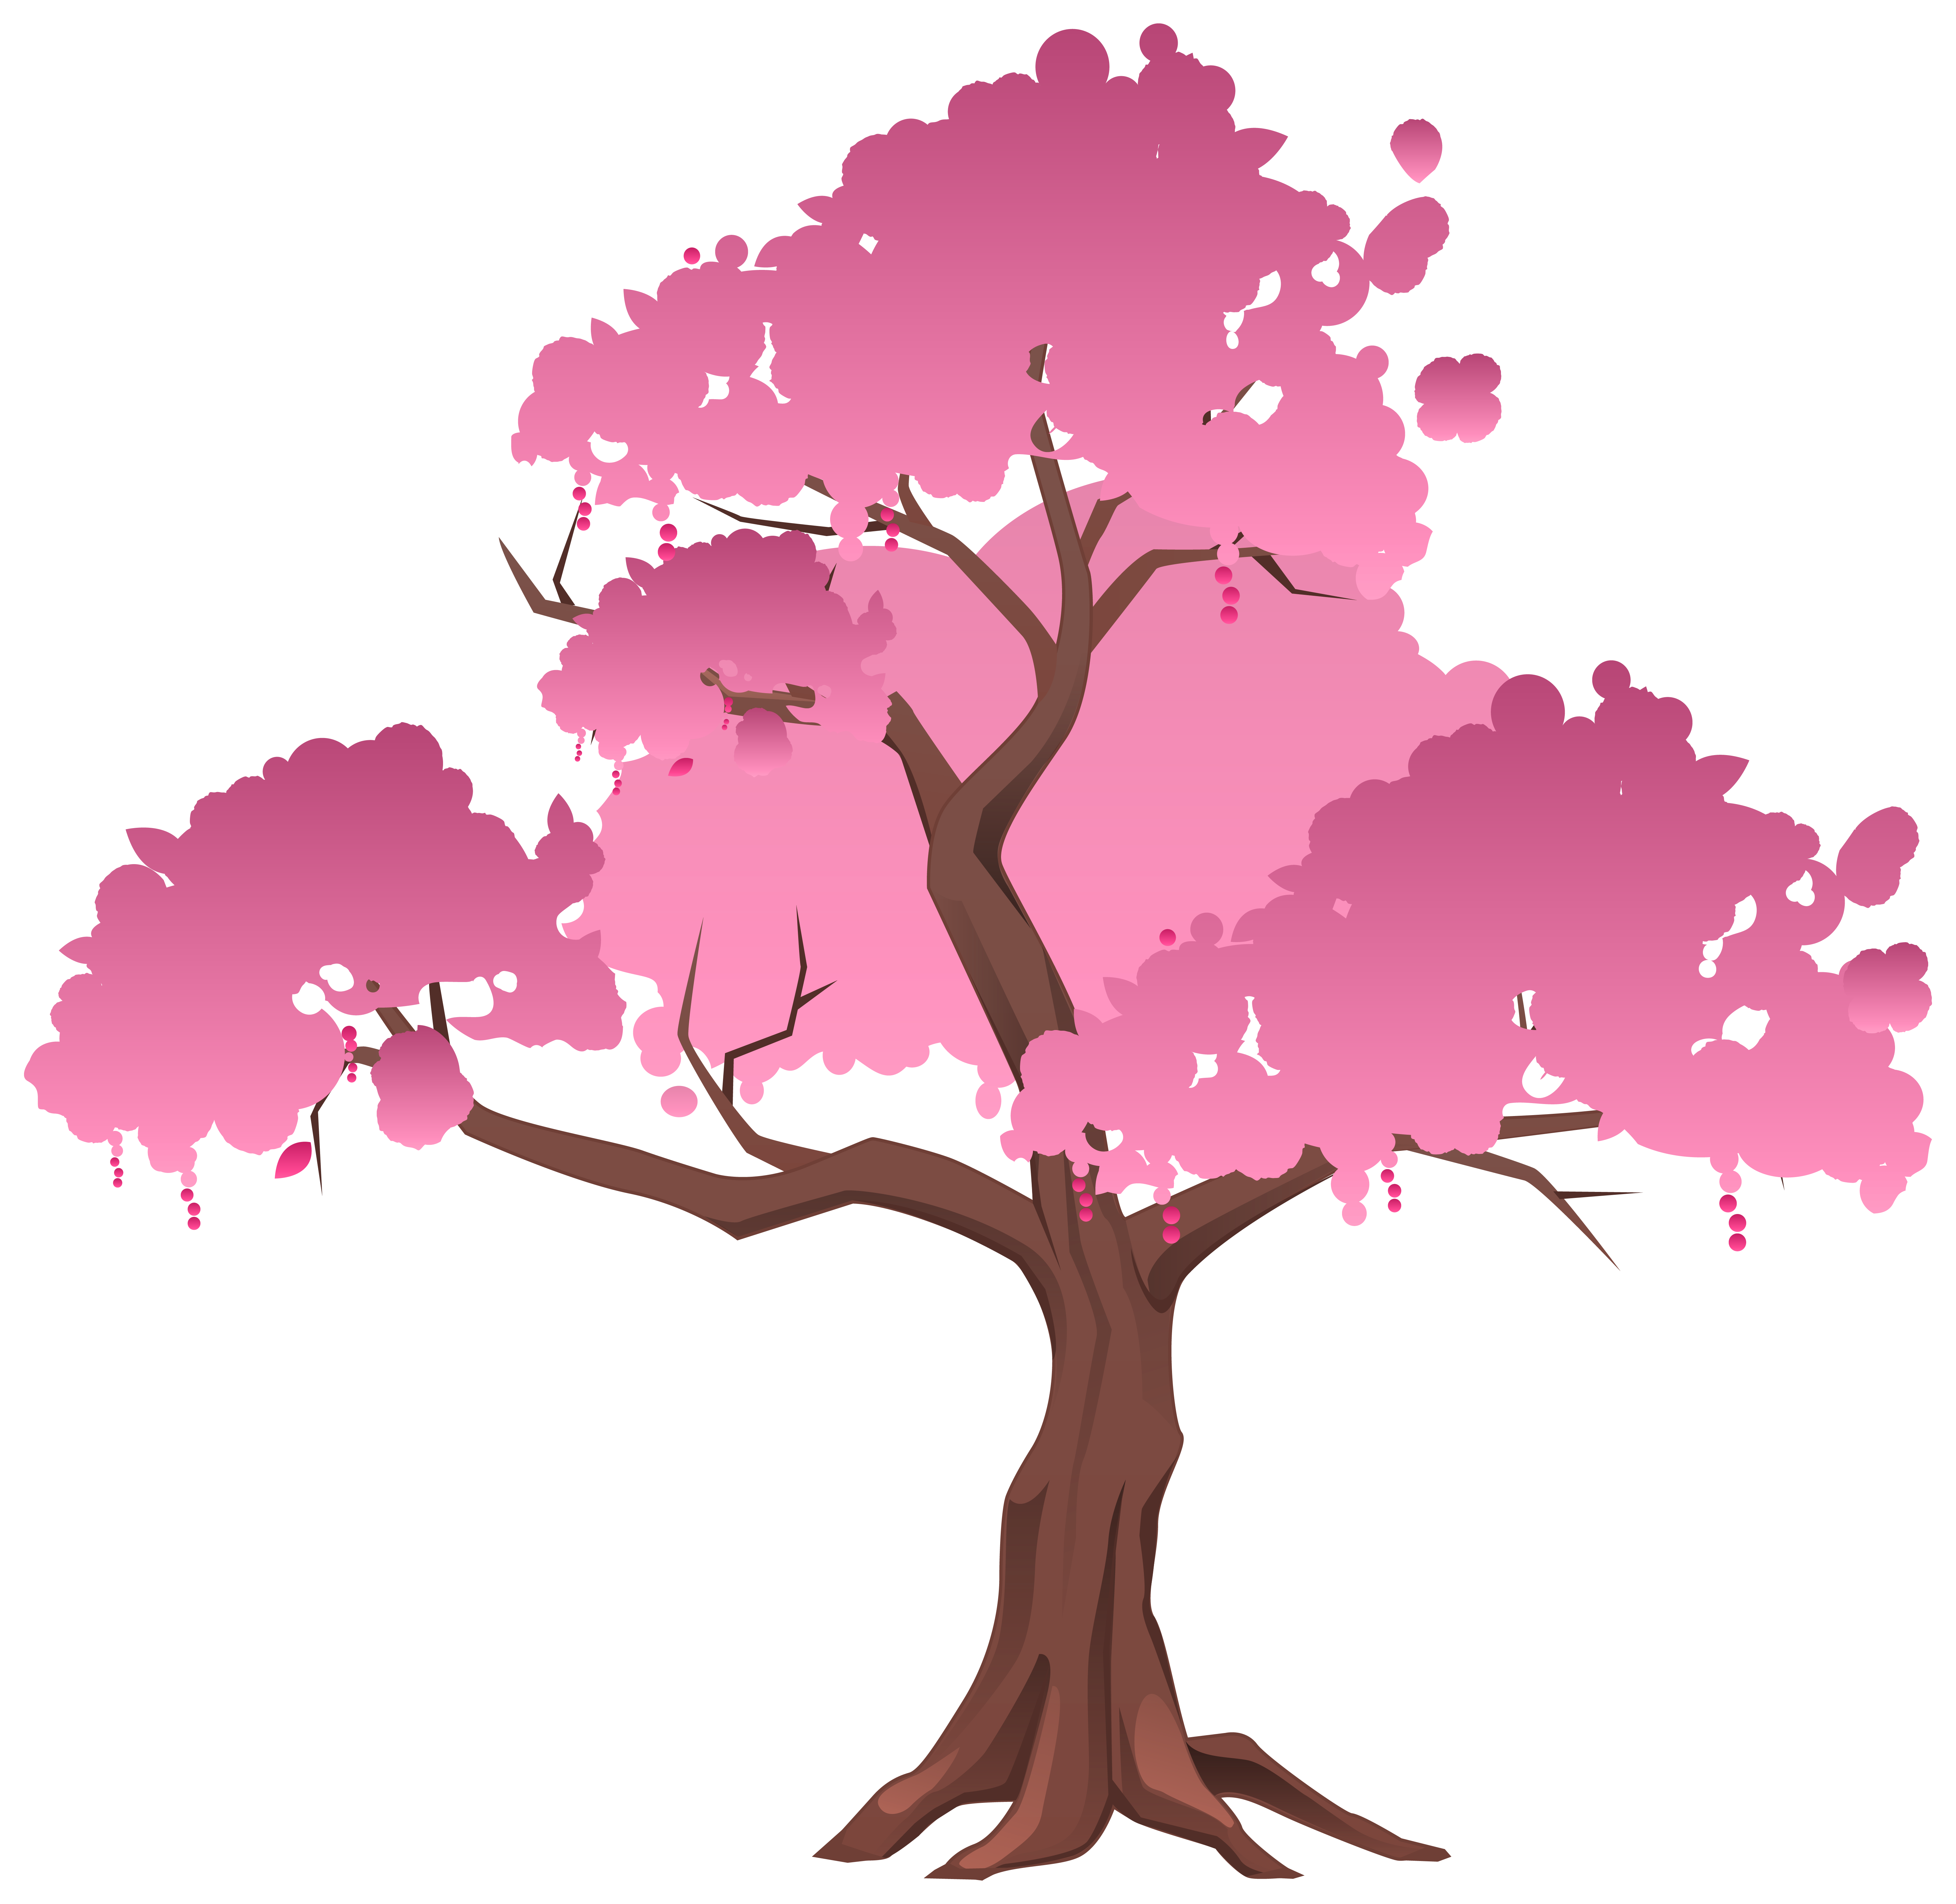 Pink trees png. Japanese tree clipart image